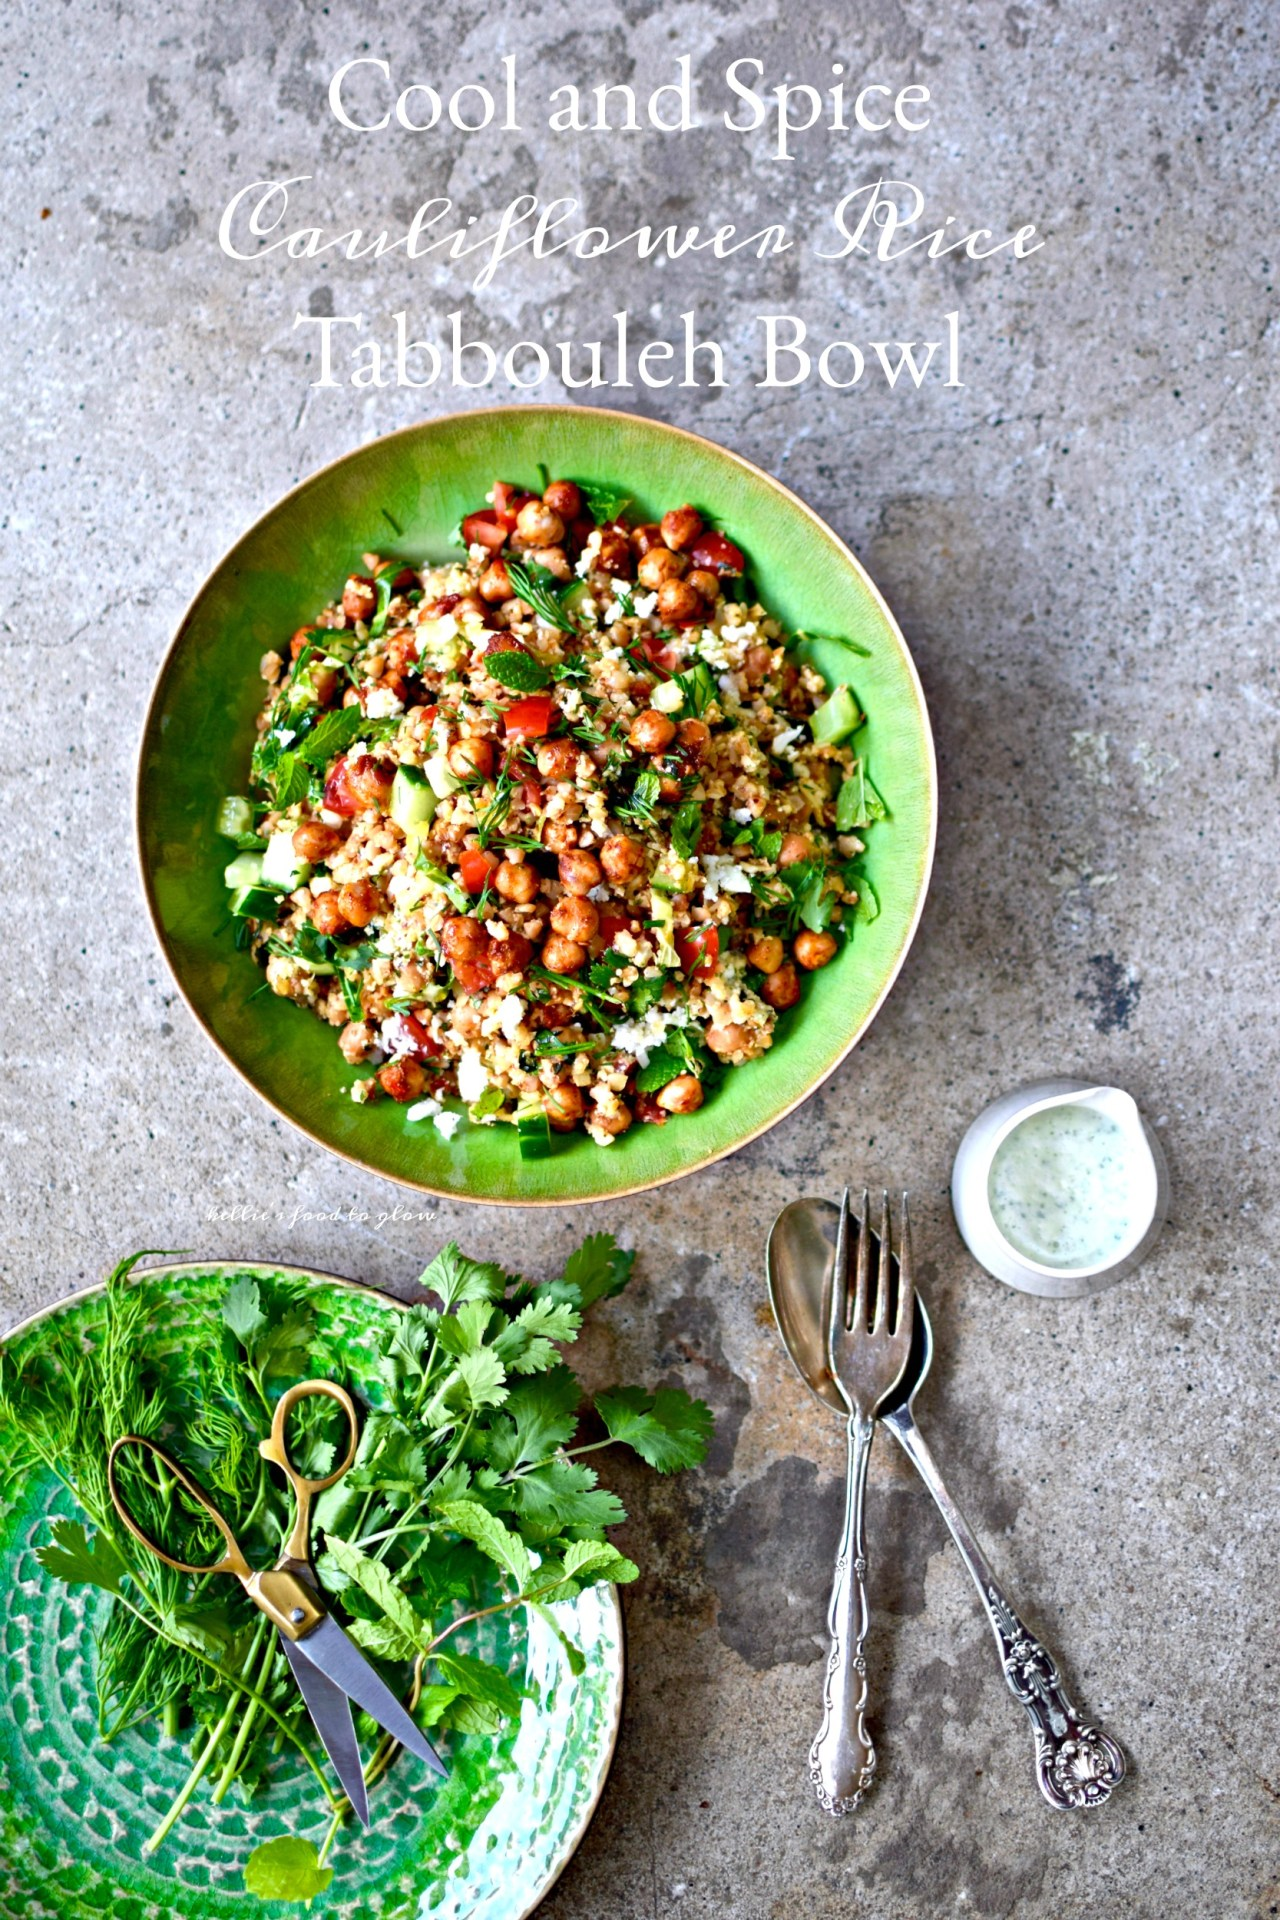 """Use your blender and one simple trick to zap whole cauliflower into perfect """"rice"""" for this throw together summer tabbouleh bowl. Add in harissa chickpeas, pre-cooked quinoa, herbs, veggies and a creamy feta and herb dressing for a cool but slightly spicy lunch or supper. Picnic-perfect and lunchbox-luscious,too."""